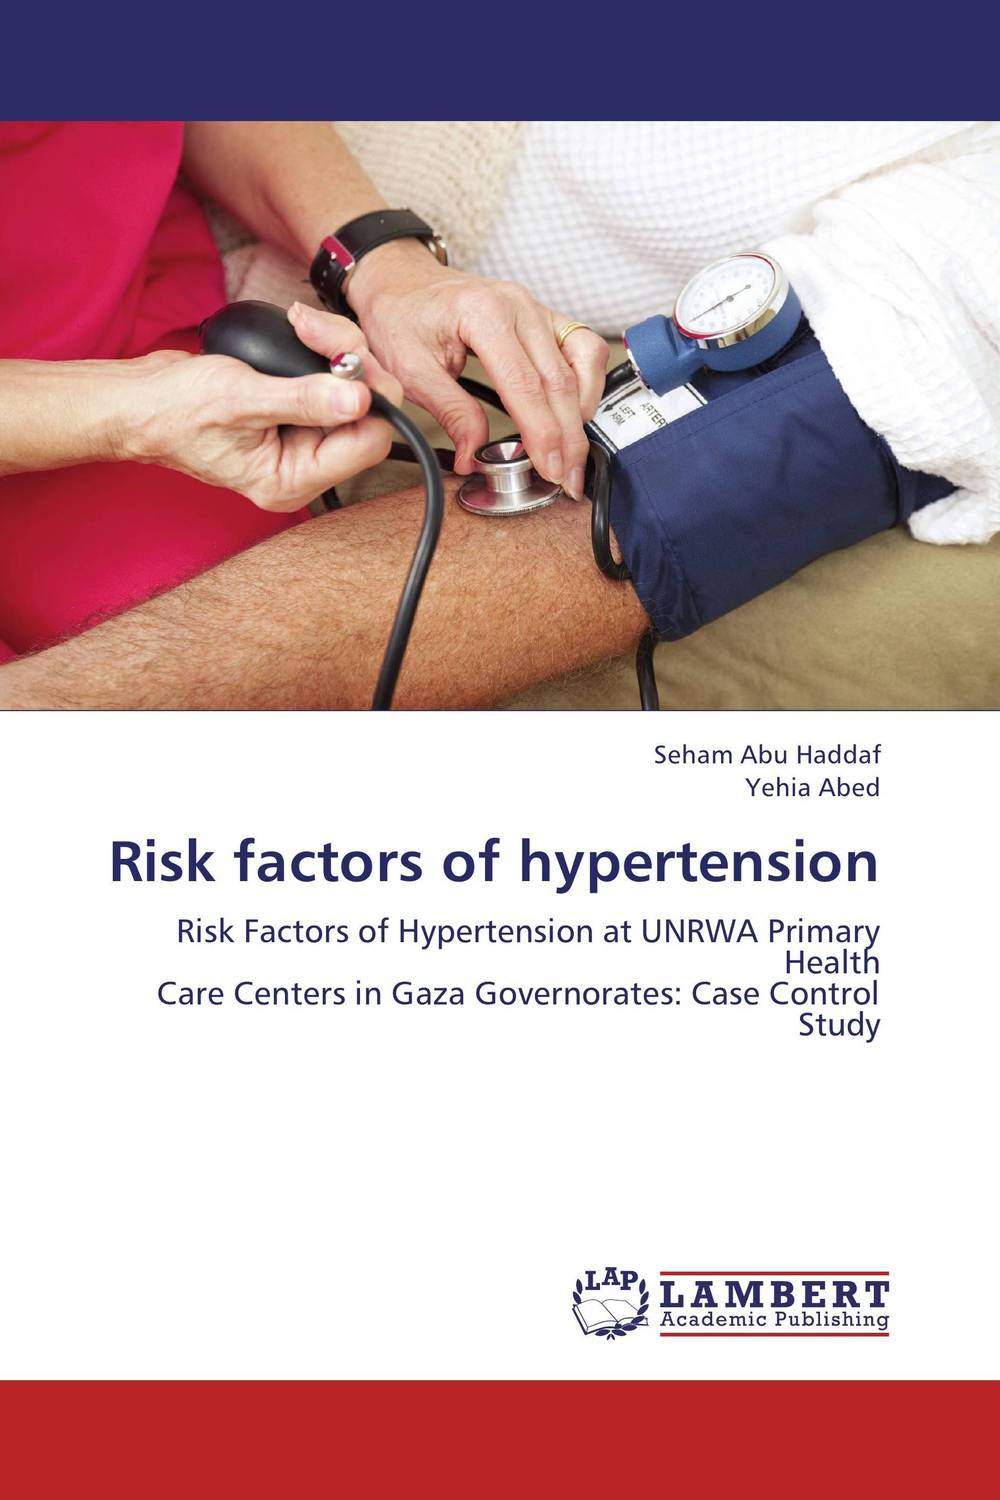 Risk factors of hypertension effects of physical exercise on hypertension